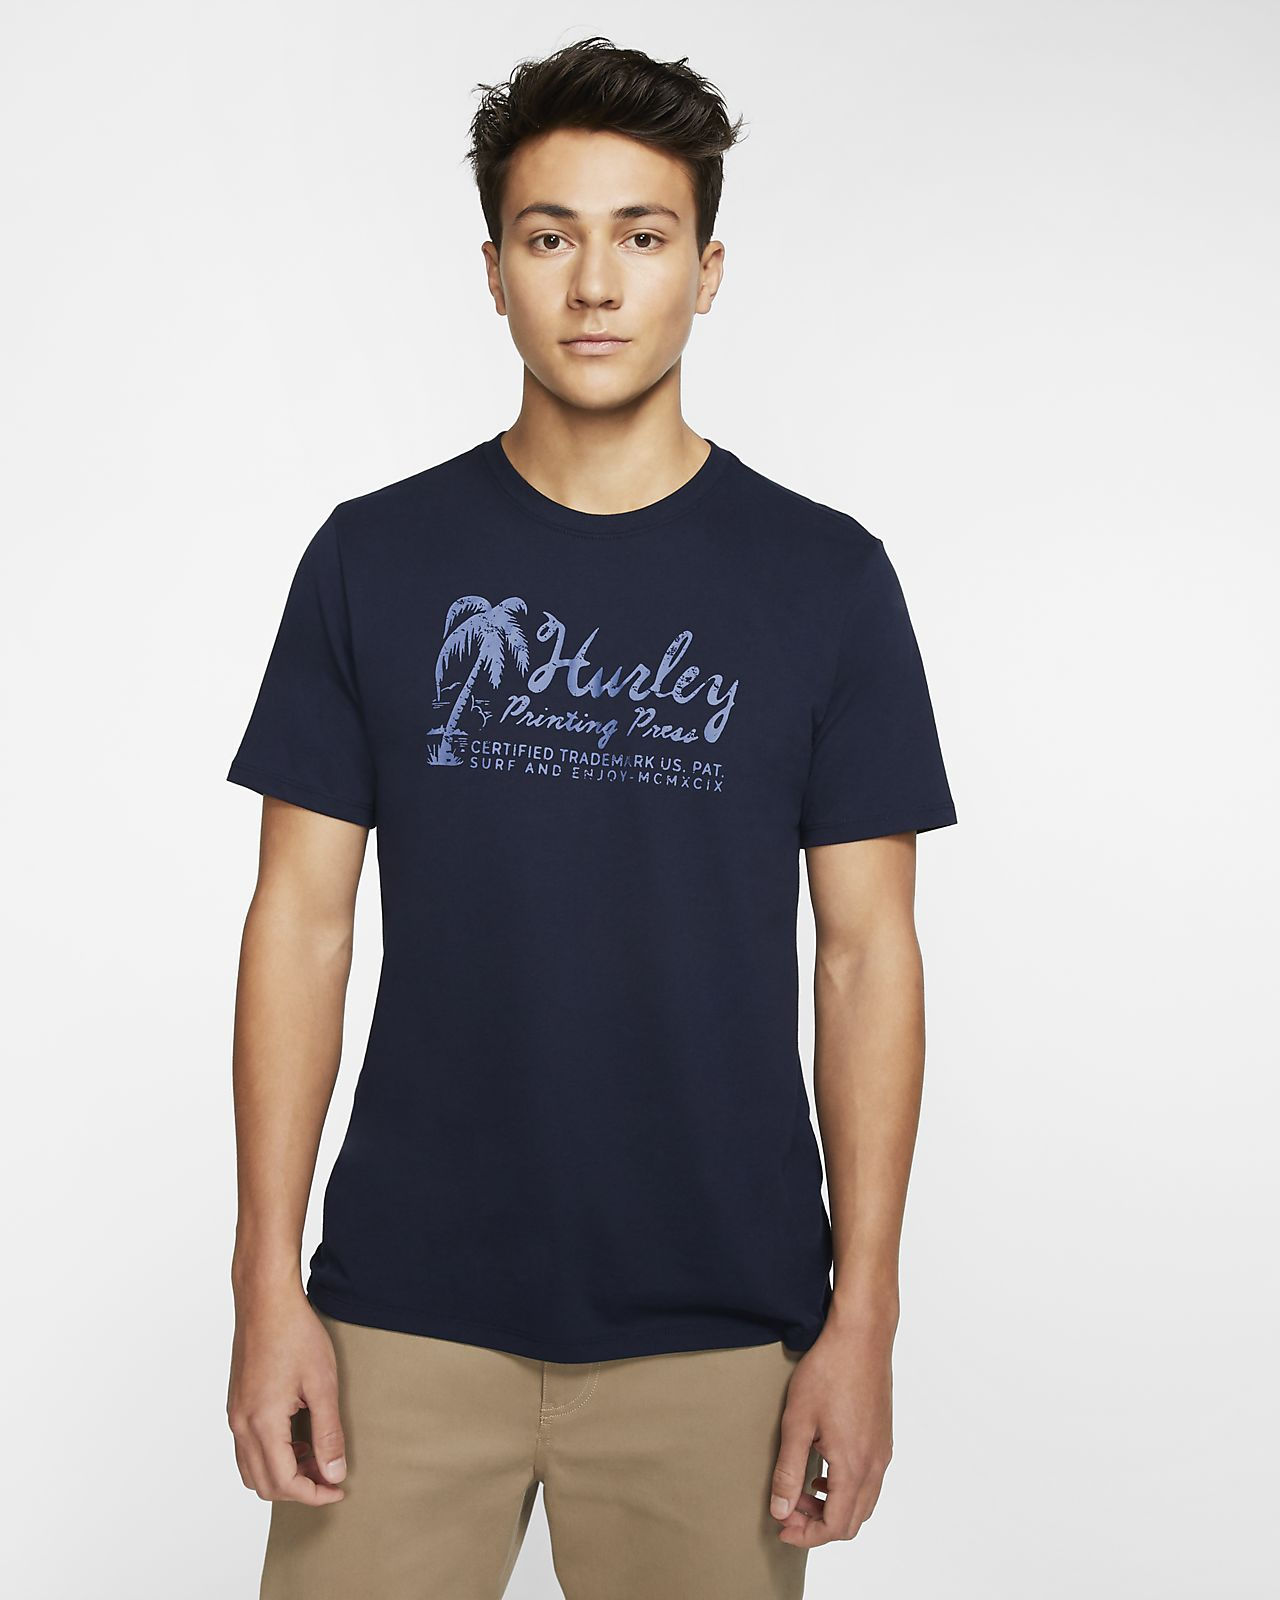 Hurley Dri-FIT Surf Imports Men's Premium Fit T-Shirt